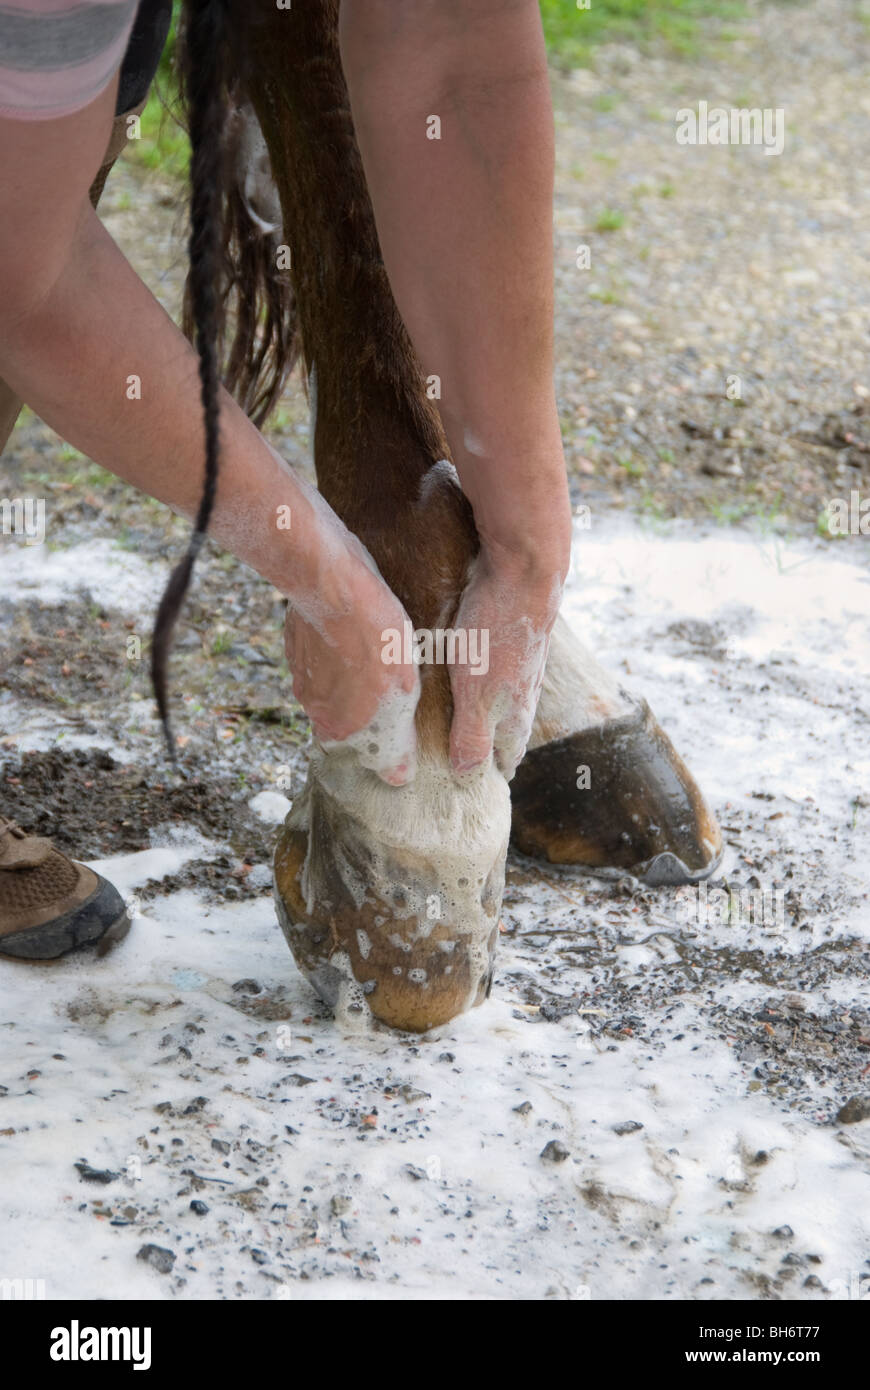 Close up photo of hands washing horse hooves with soap suds. - Stock Image